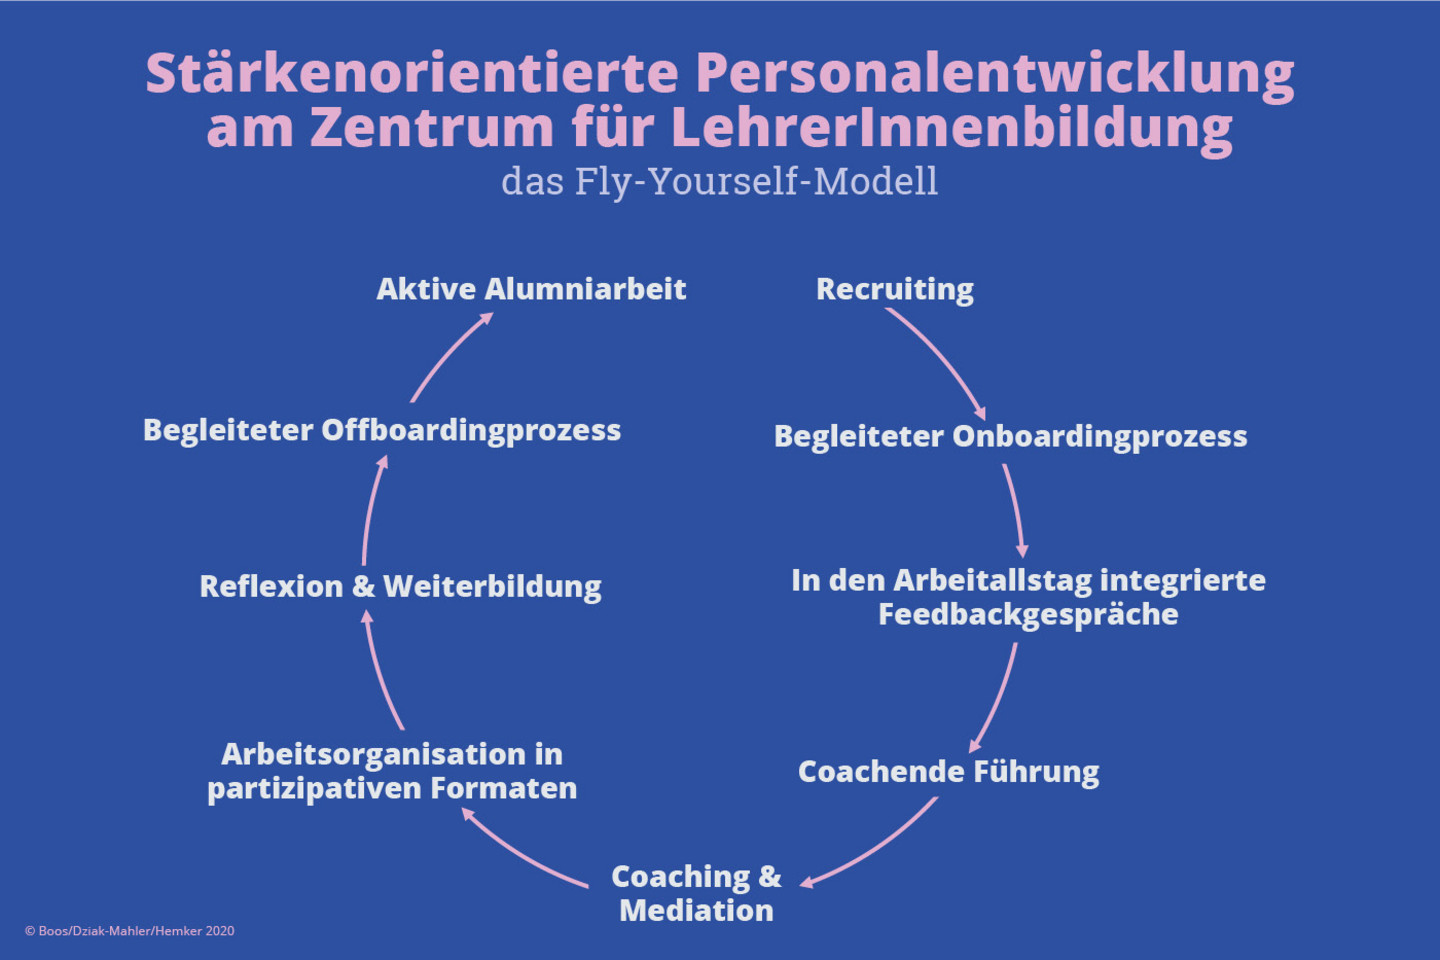 Das Fly-Yourself Modell